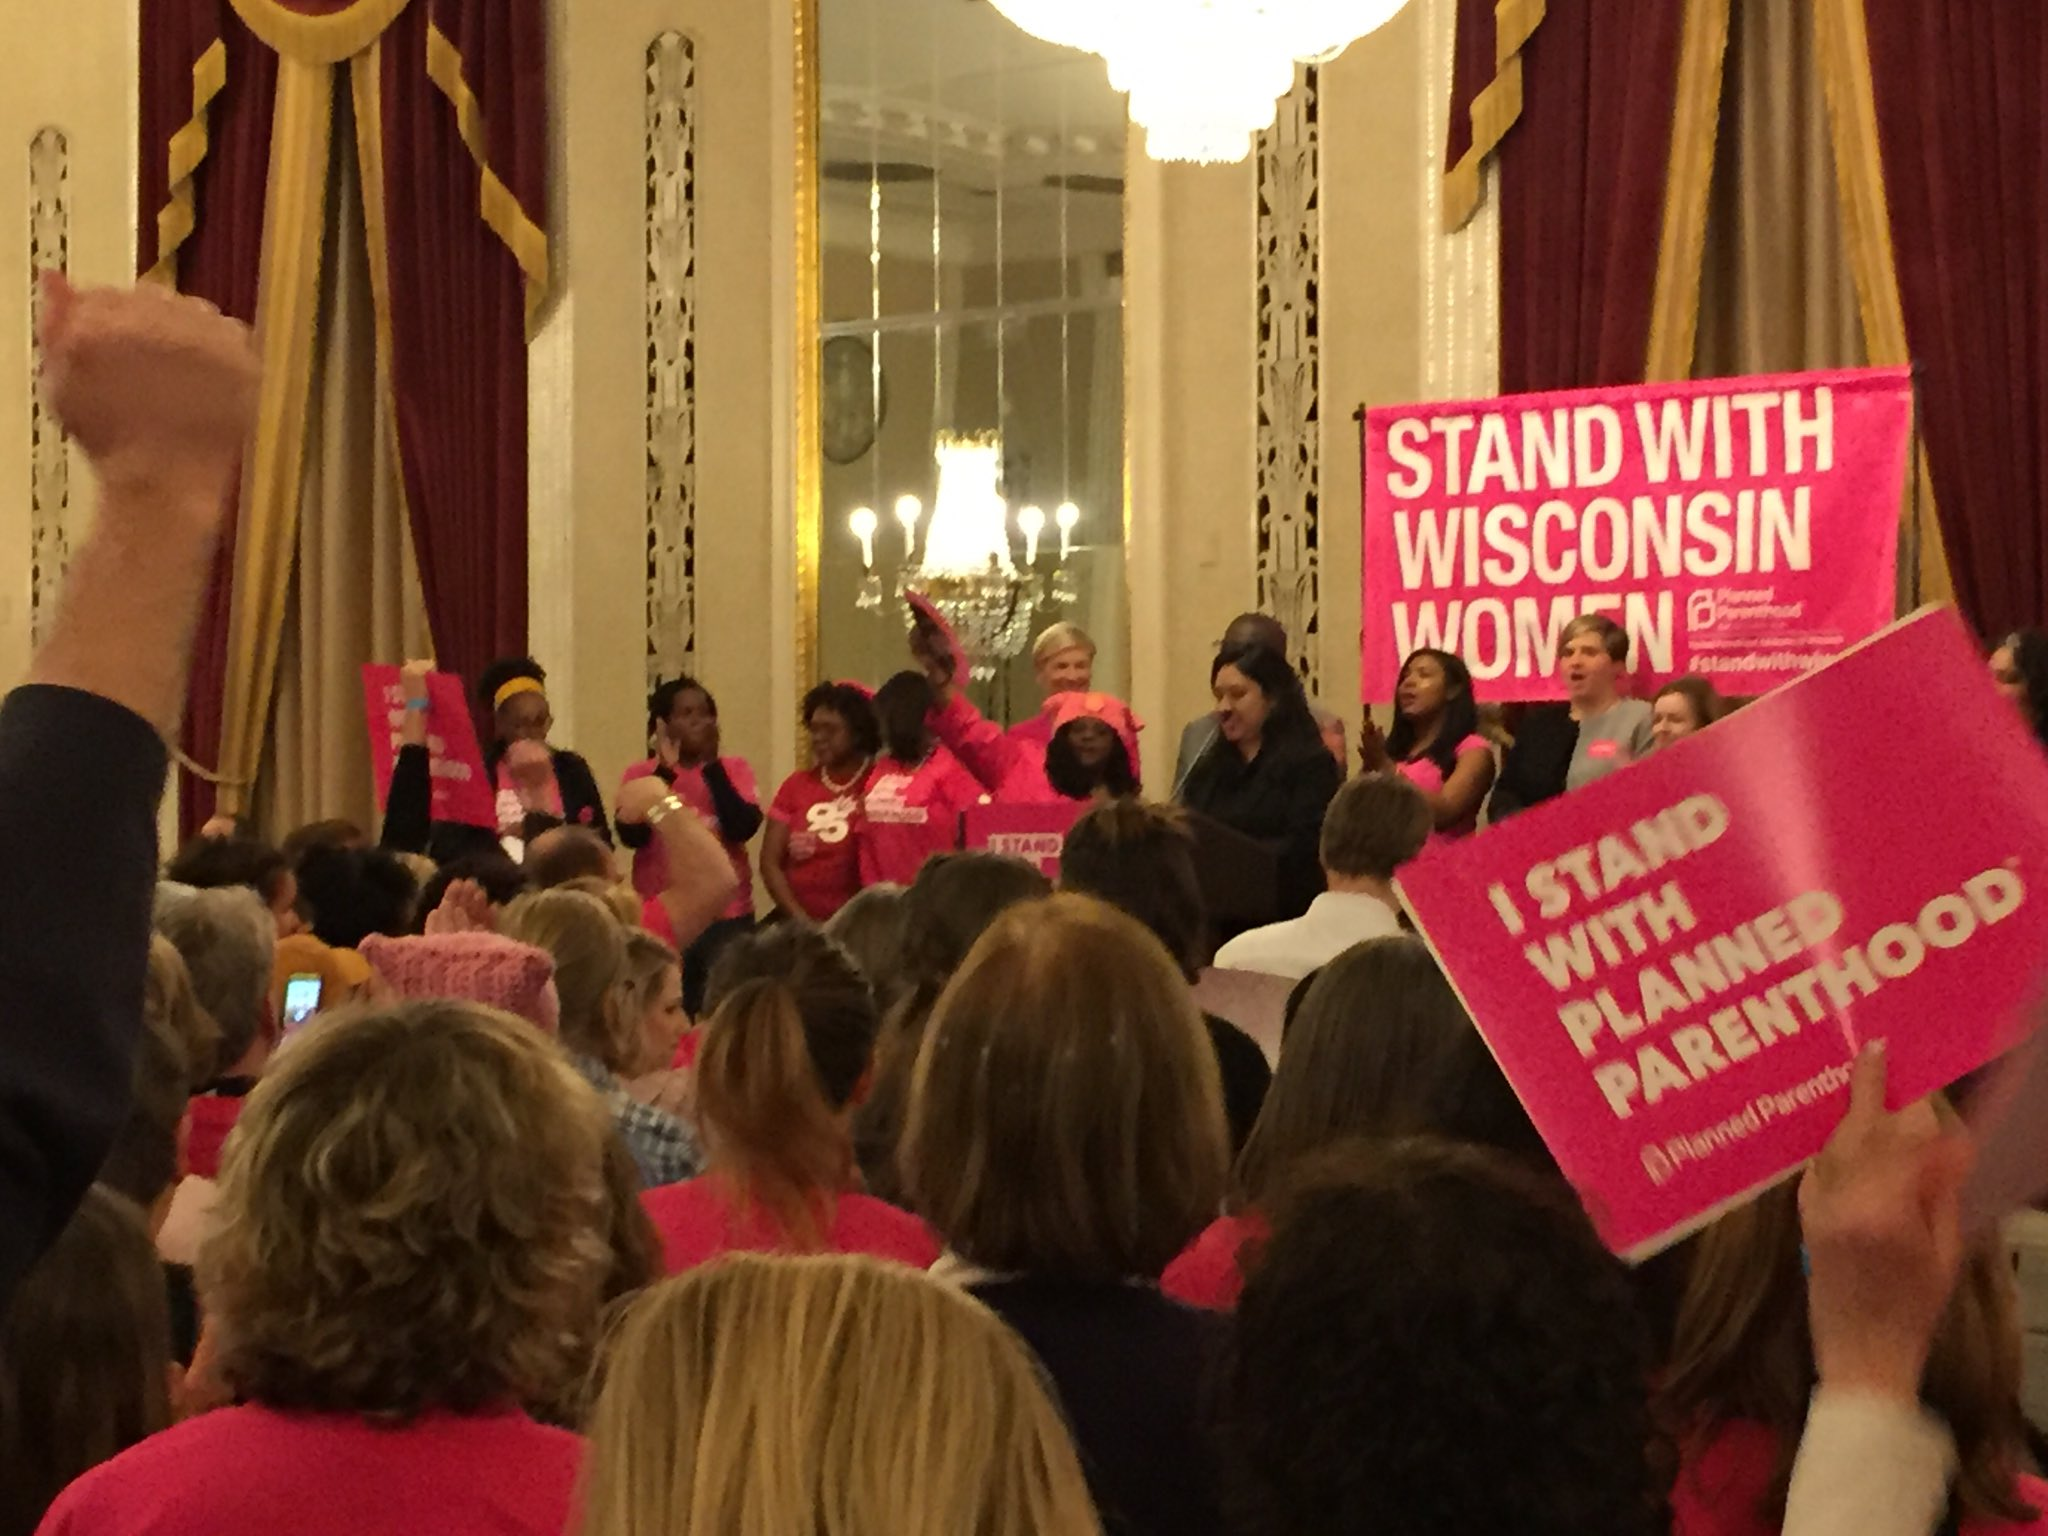 Hundreds gather to support Planned Parenthood